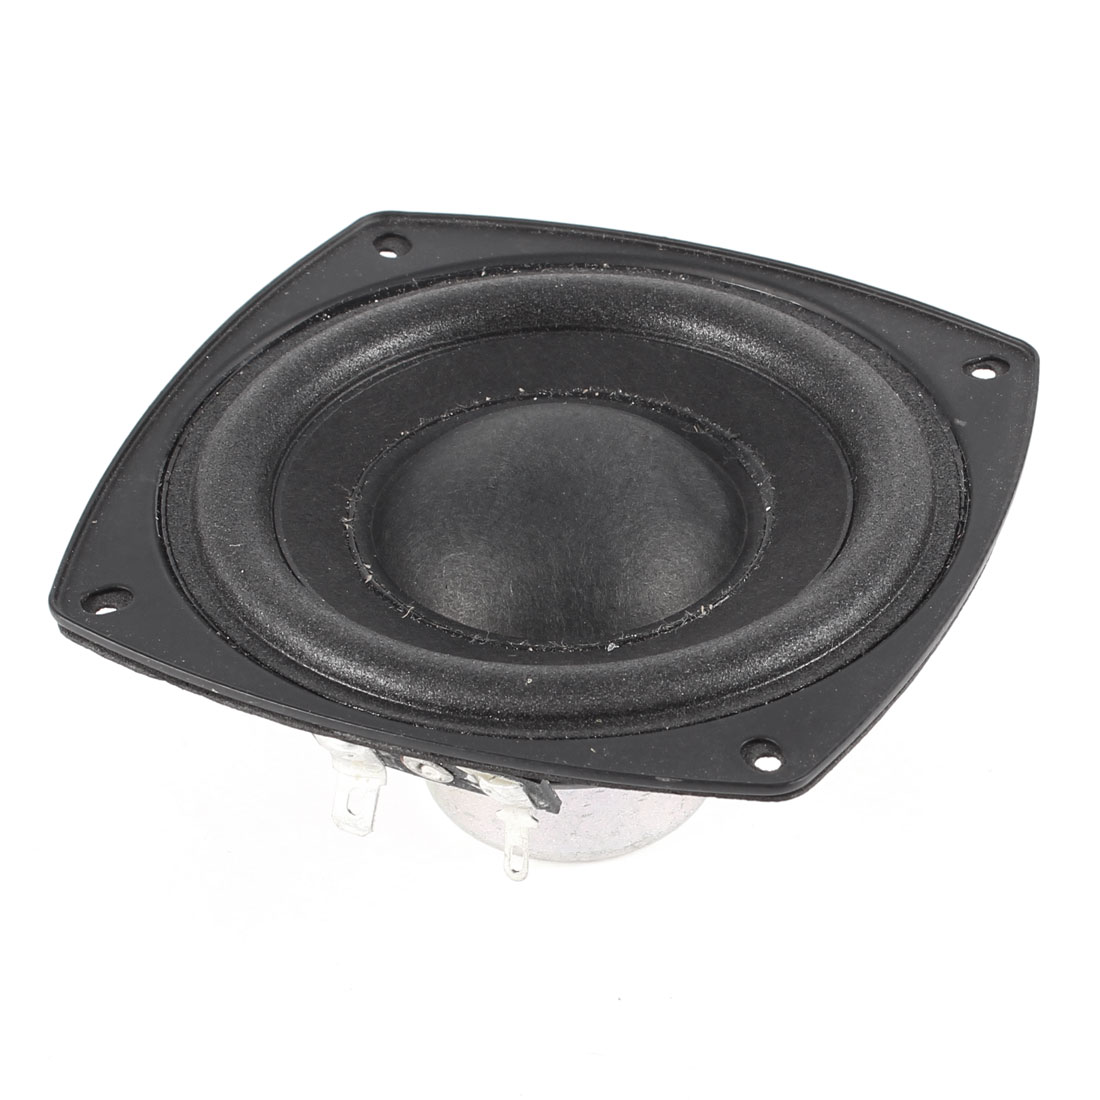 98mm Internal Magnet Toys Multimedia Speaker Tweeter Horn 4 Ohm 10W